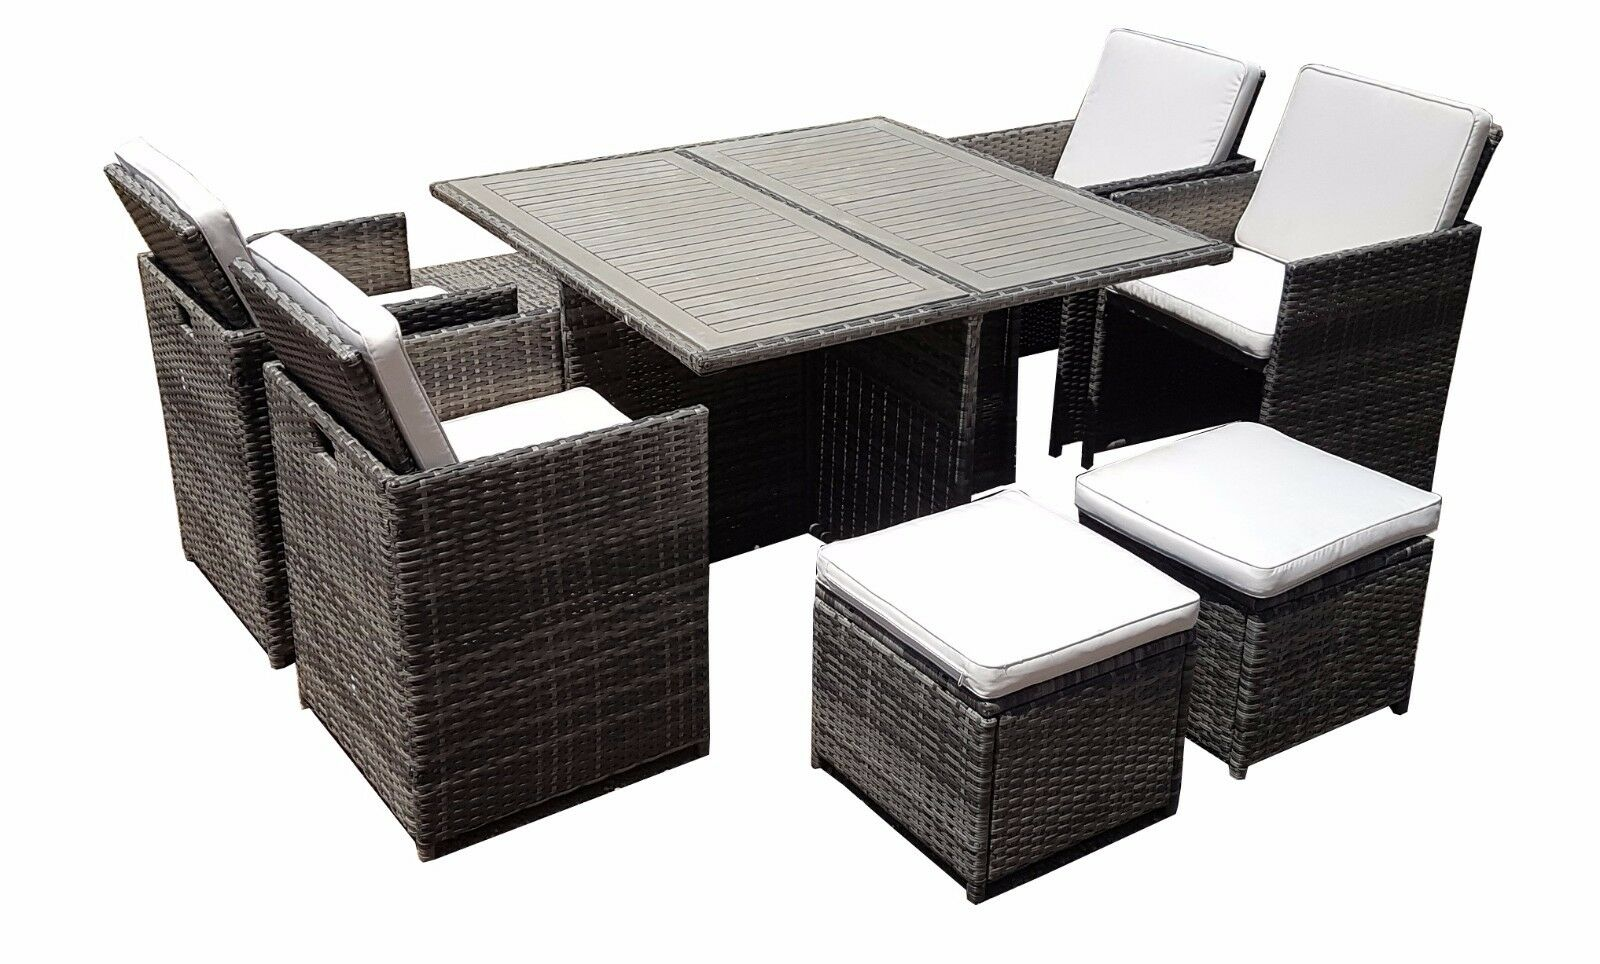 Rattan Corner Sofa Set Ebay New Rattan Wicker Conservatory Outdoor Garden Furniture